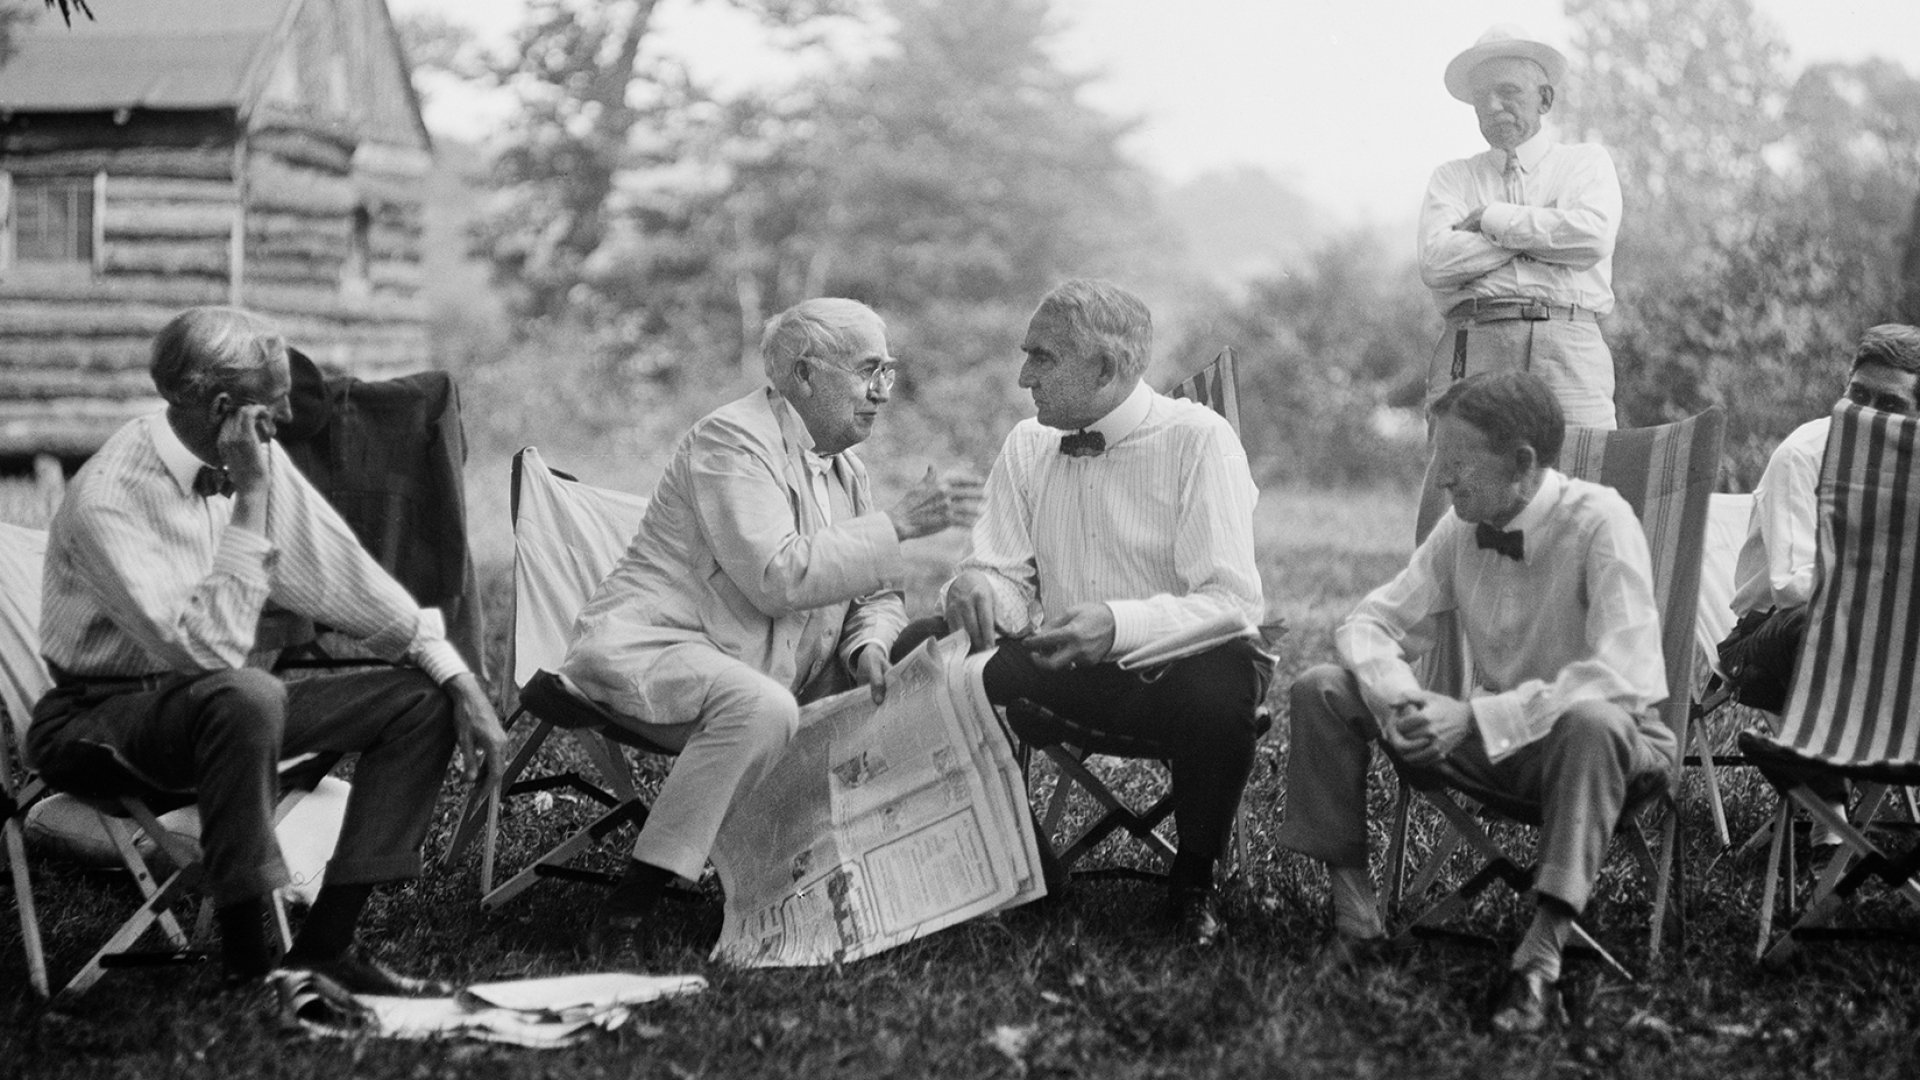 Henry Ford, Thomas Edison, President Warren G. Harding, and Harvey Firestone at a campsite in Maryland in June 1921.